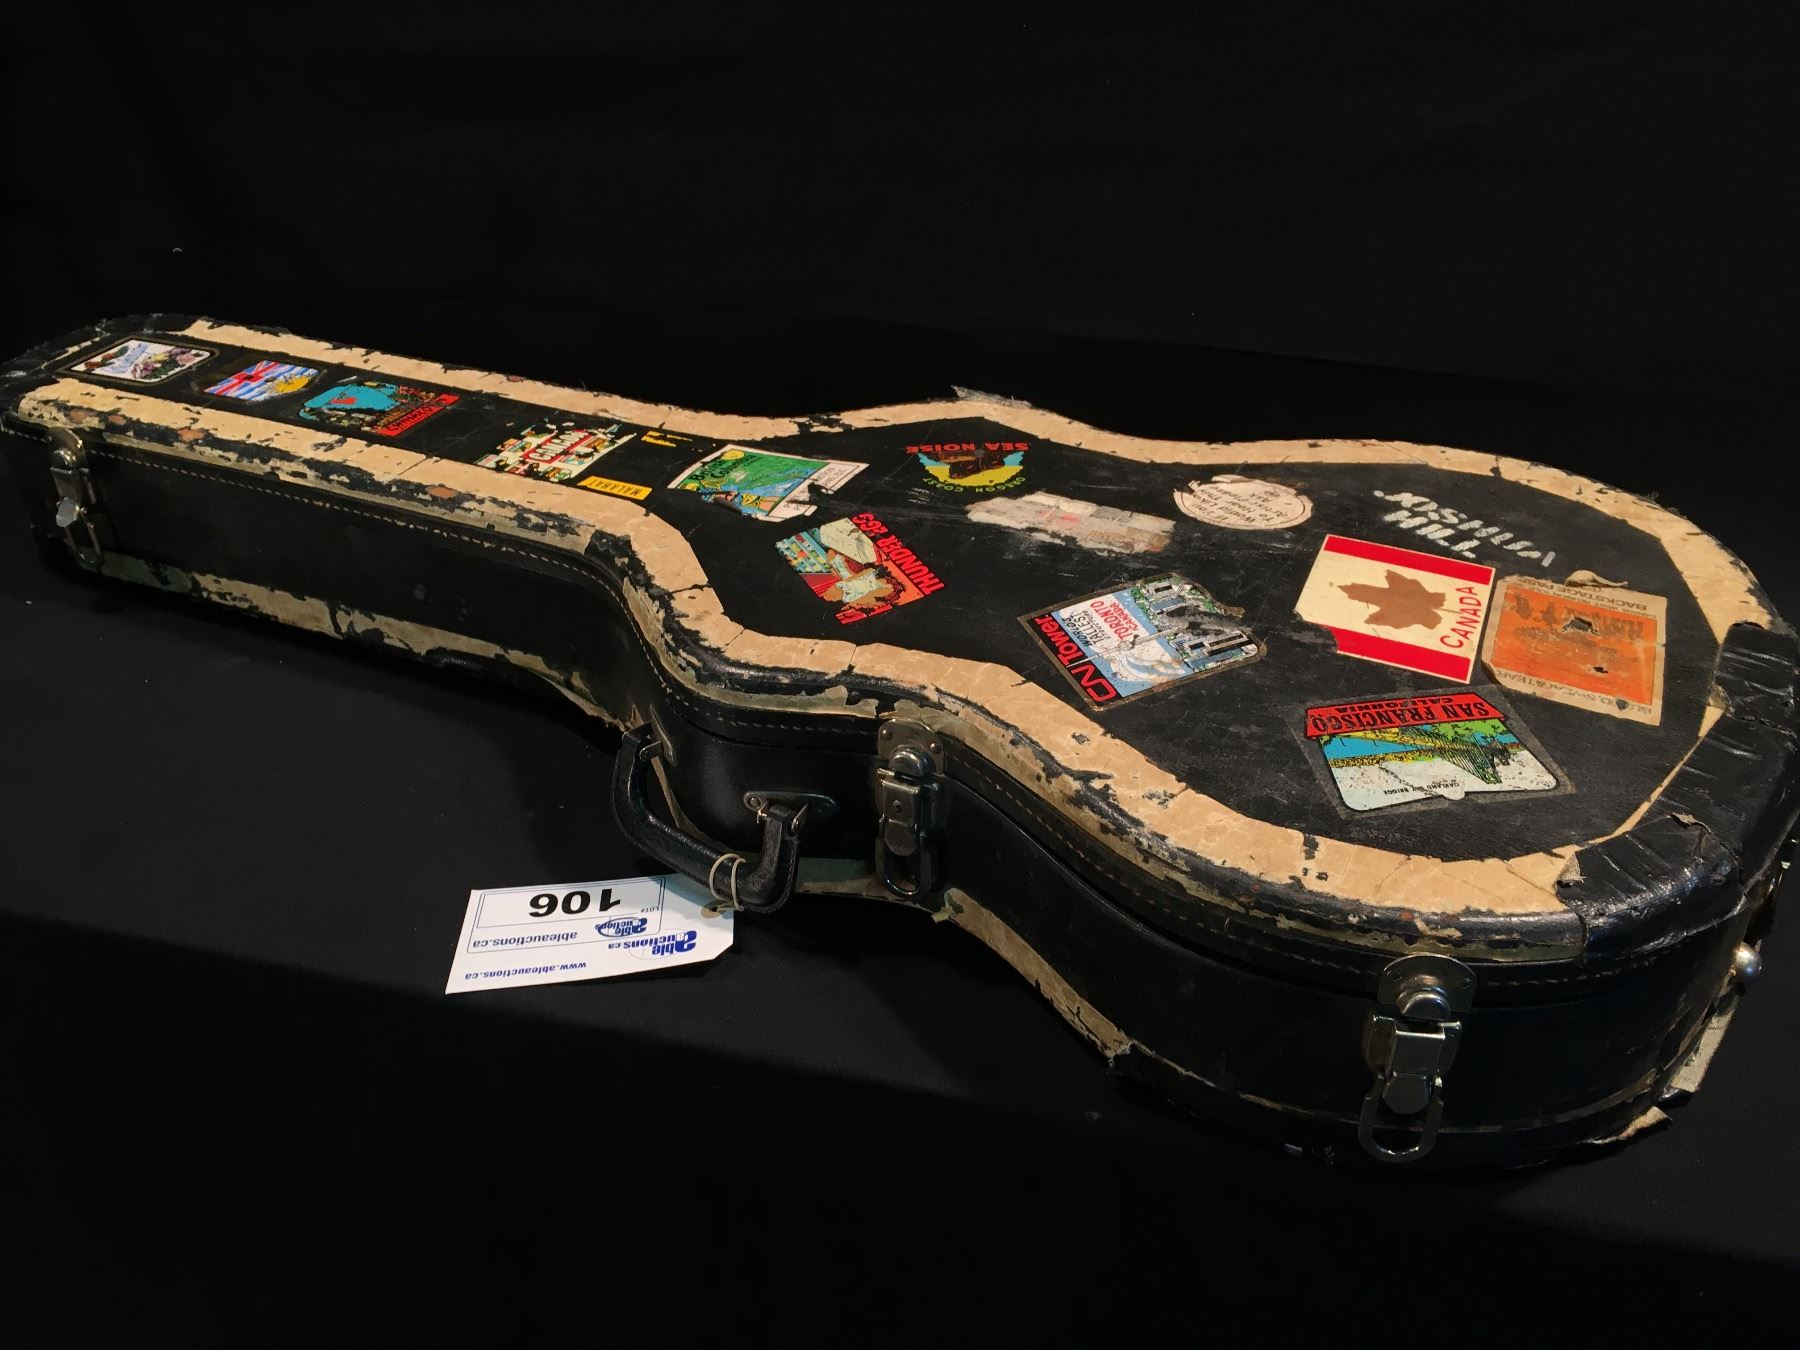 Hookup guild guitars by serial number